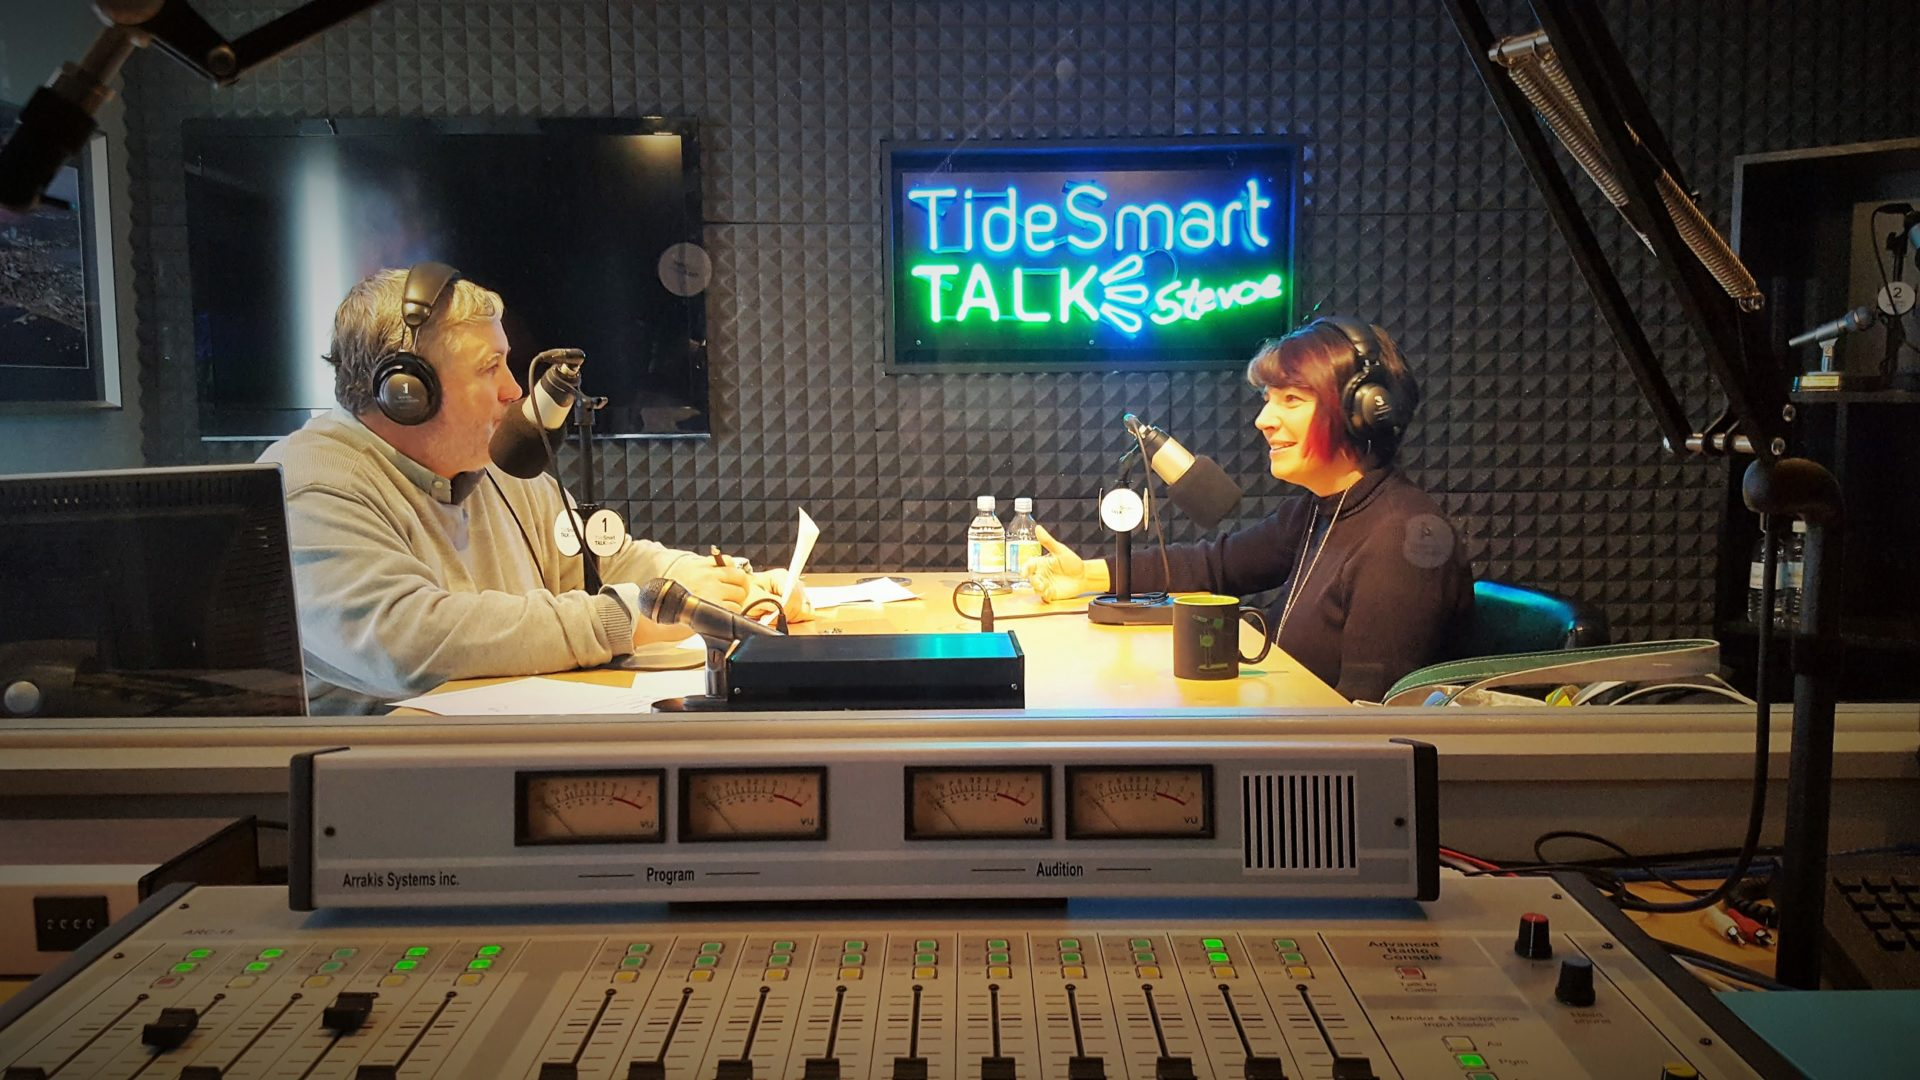 Host of TideSmart Talk with Stevoe, Steve Woods, welcomed Dr. Aileen Yingst, Senior Scientist with the Planetary Science Institute (at right).